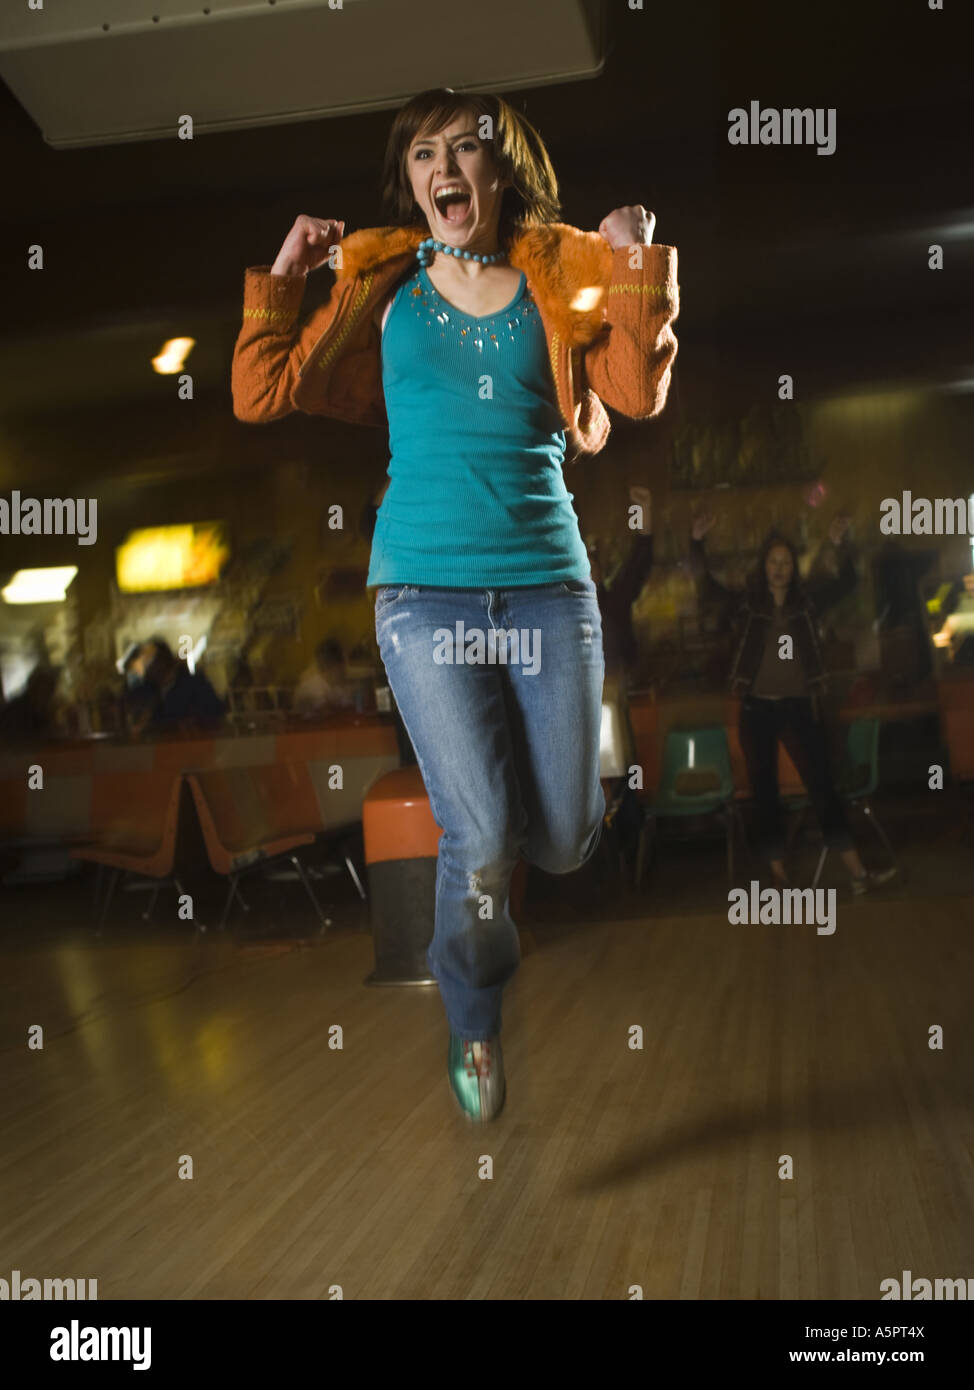 Teenage girl jumping in excitement in a bowling alley - Stock Image